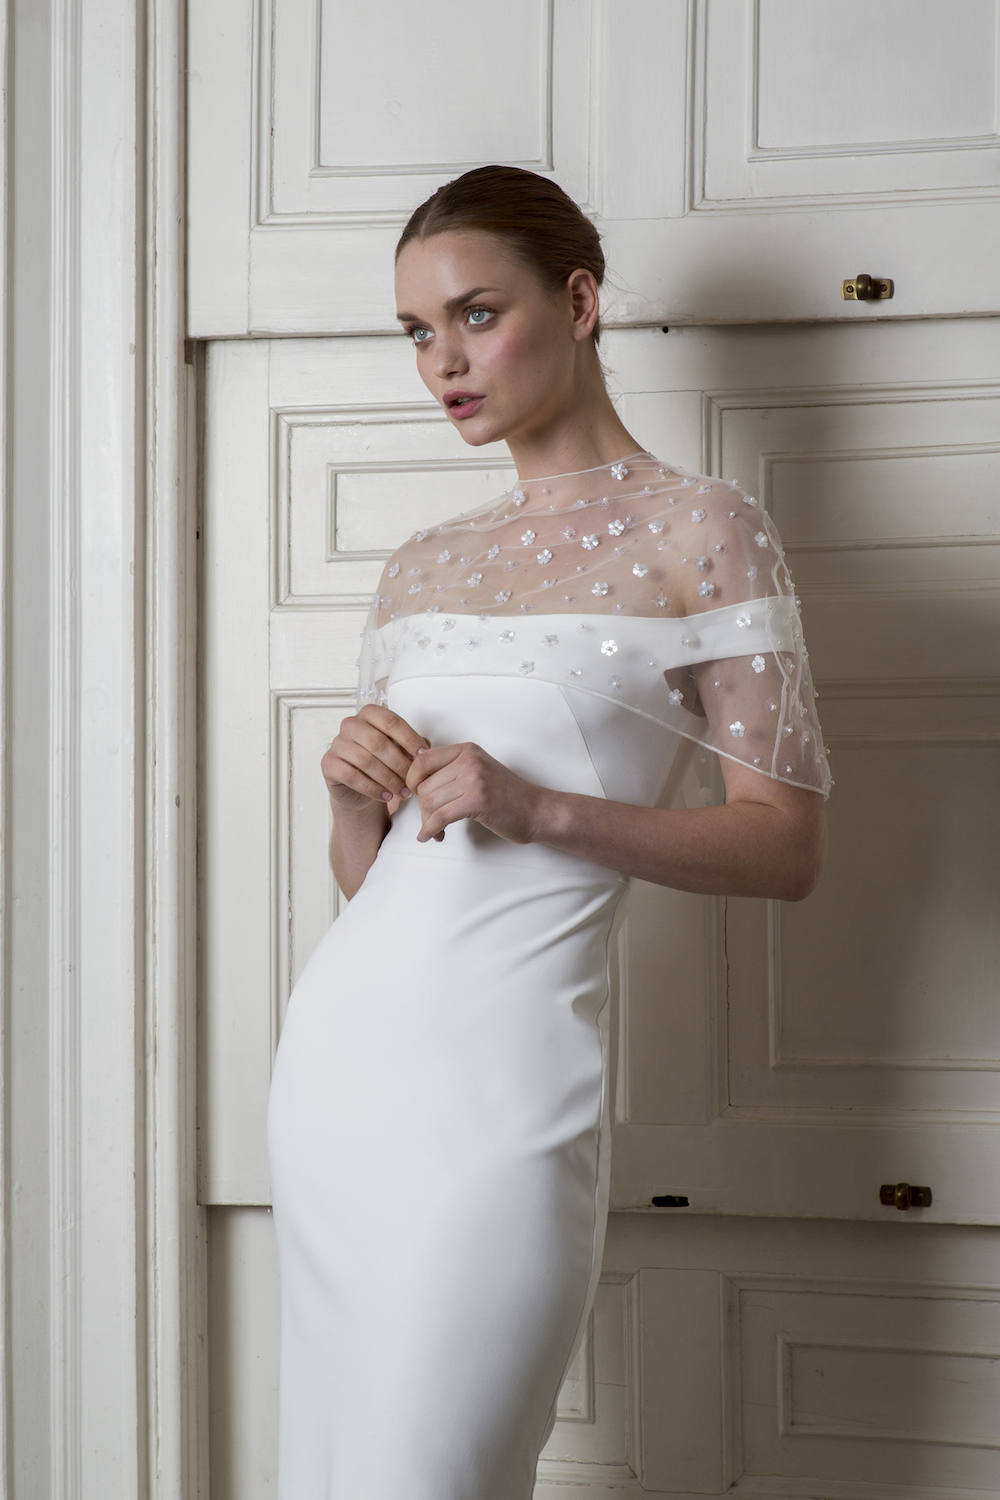 BLOOMSBURY CAPE & HARBOUR DRESS | WEDDING DRESS BY HALFPENNY LONDON